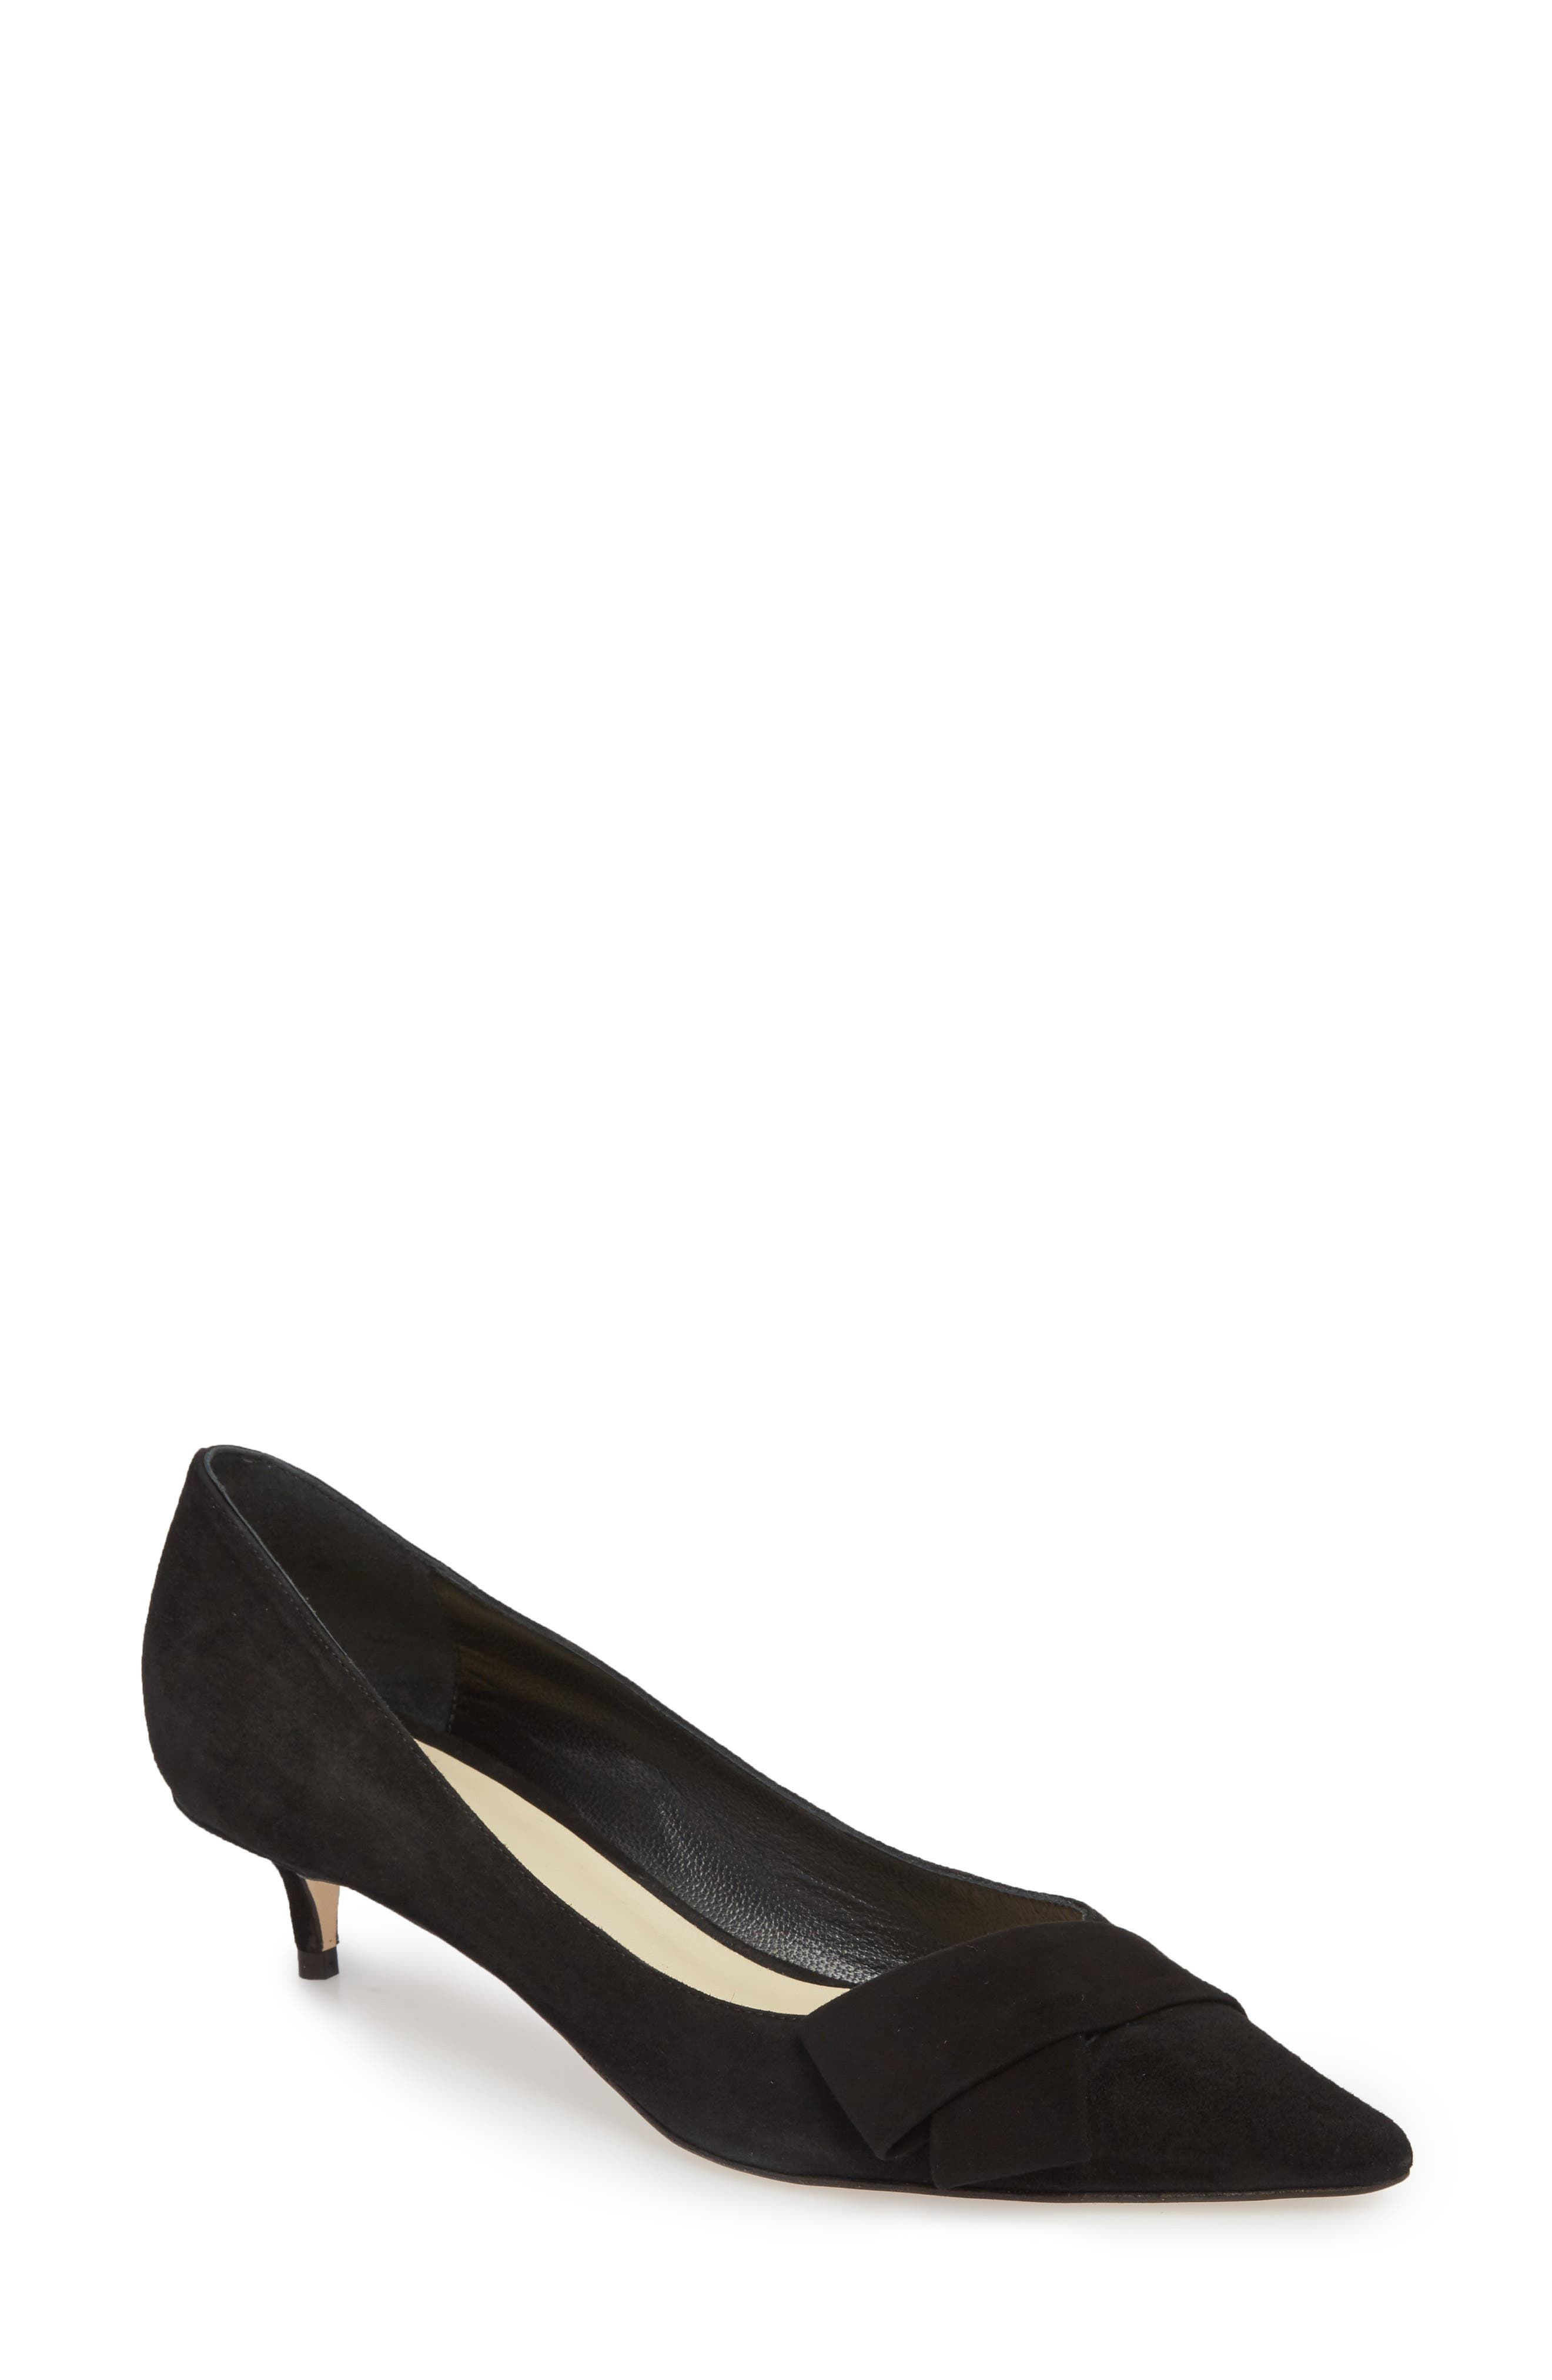 Butter Bliss Pointy Toe Pump,                             Main thumbnail 1, color,